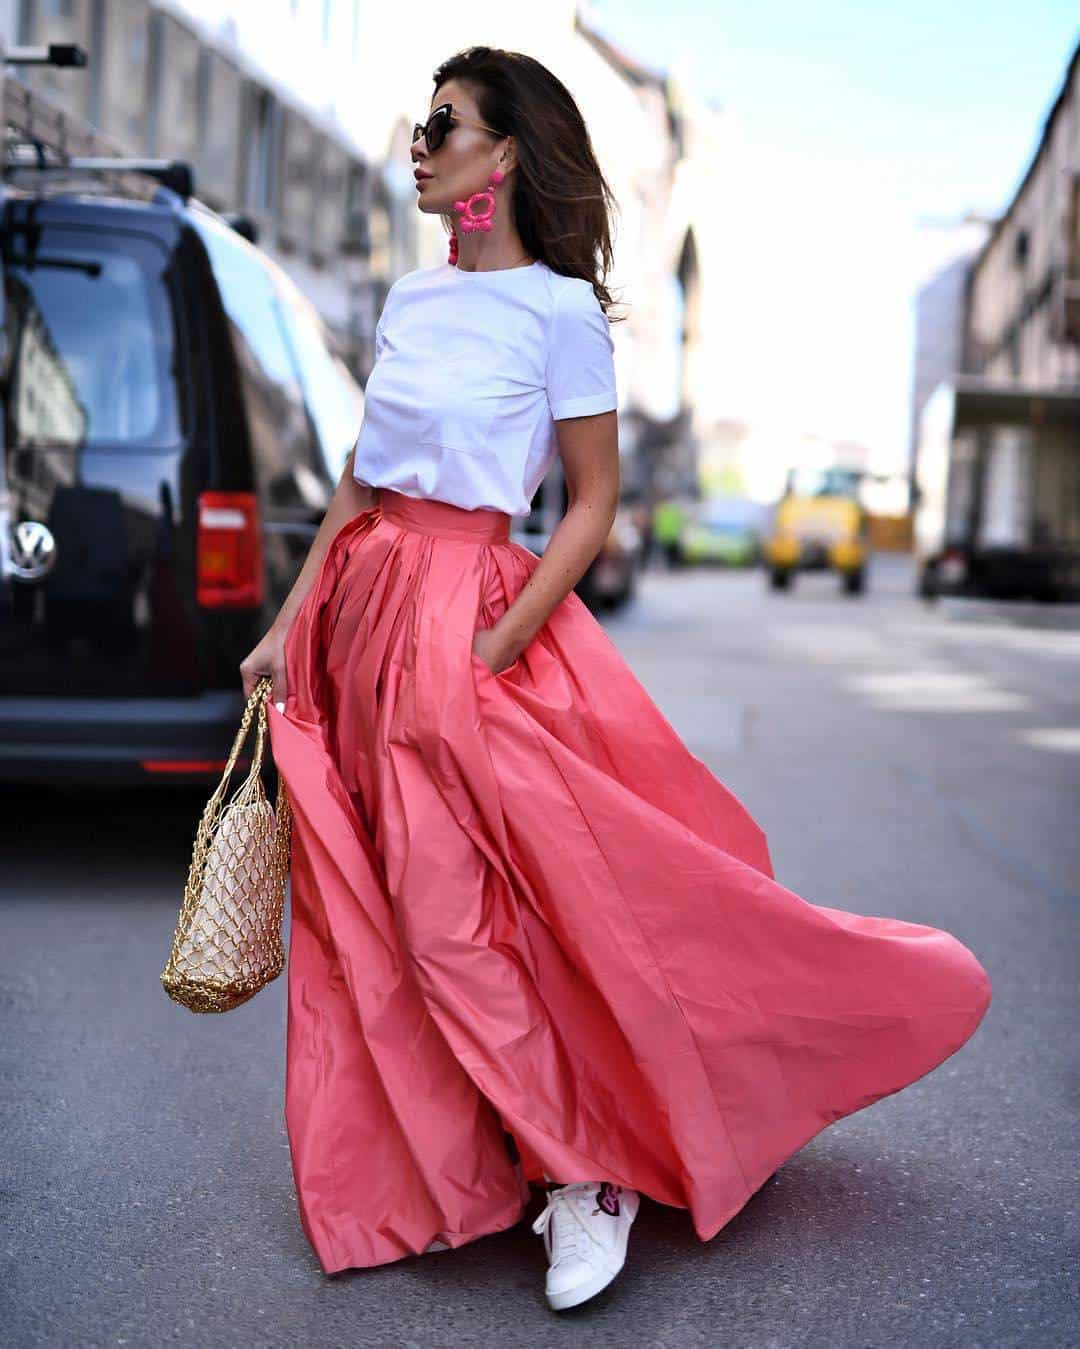 Fashion skirts 2019: four season skirts 2019